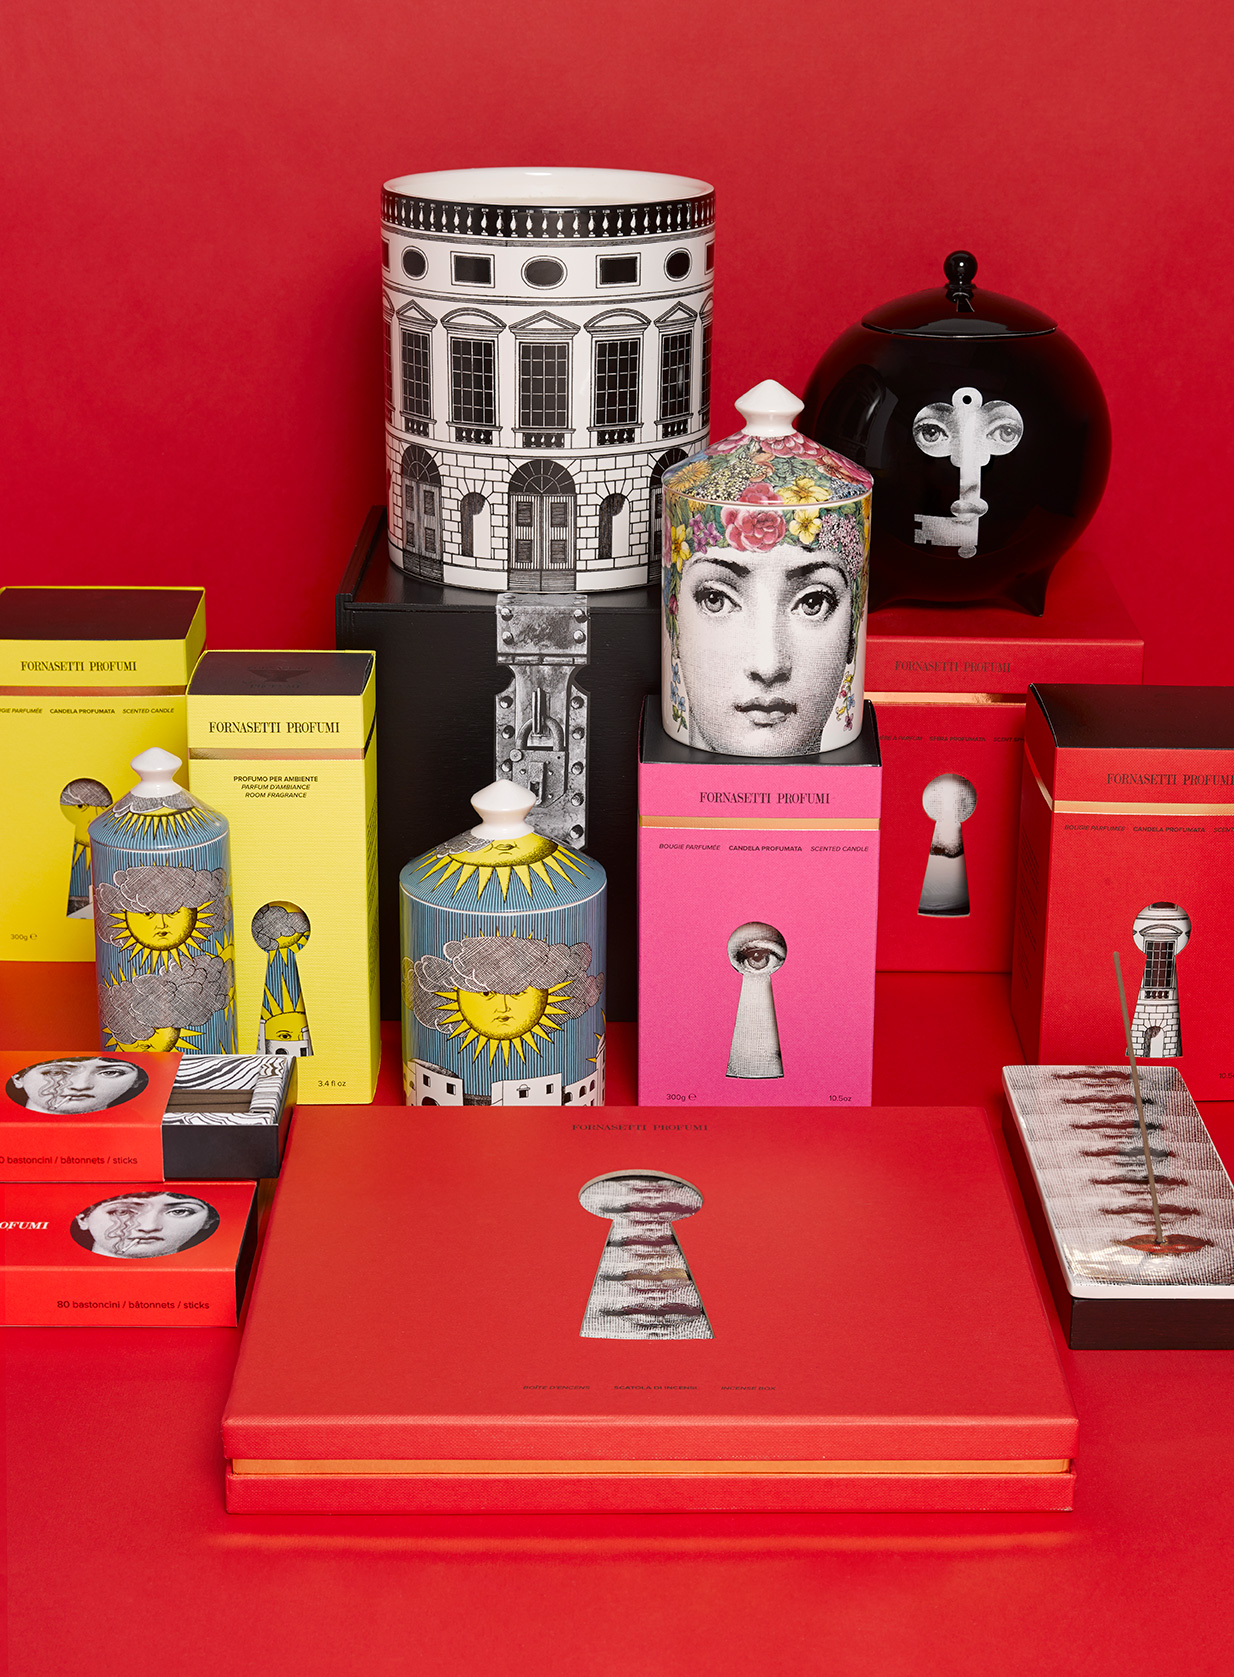 Fornasetti-Profumi-Narrative-gallery-2